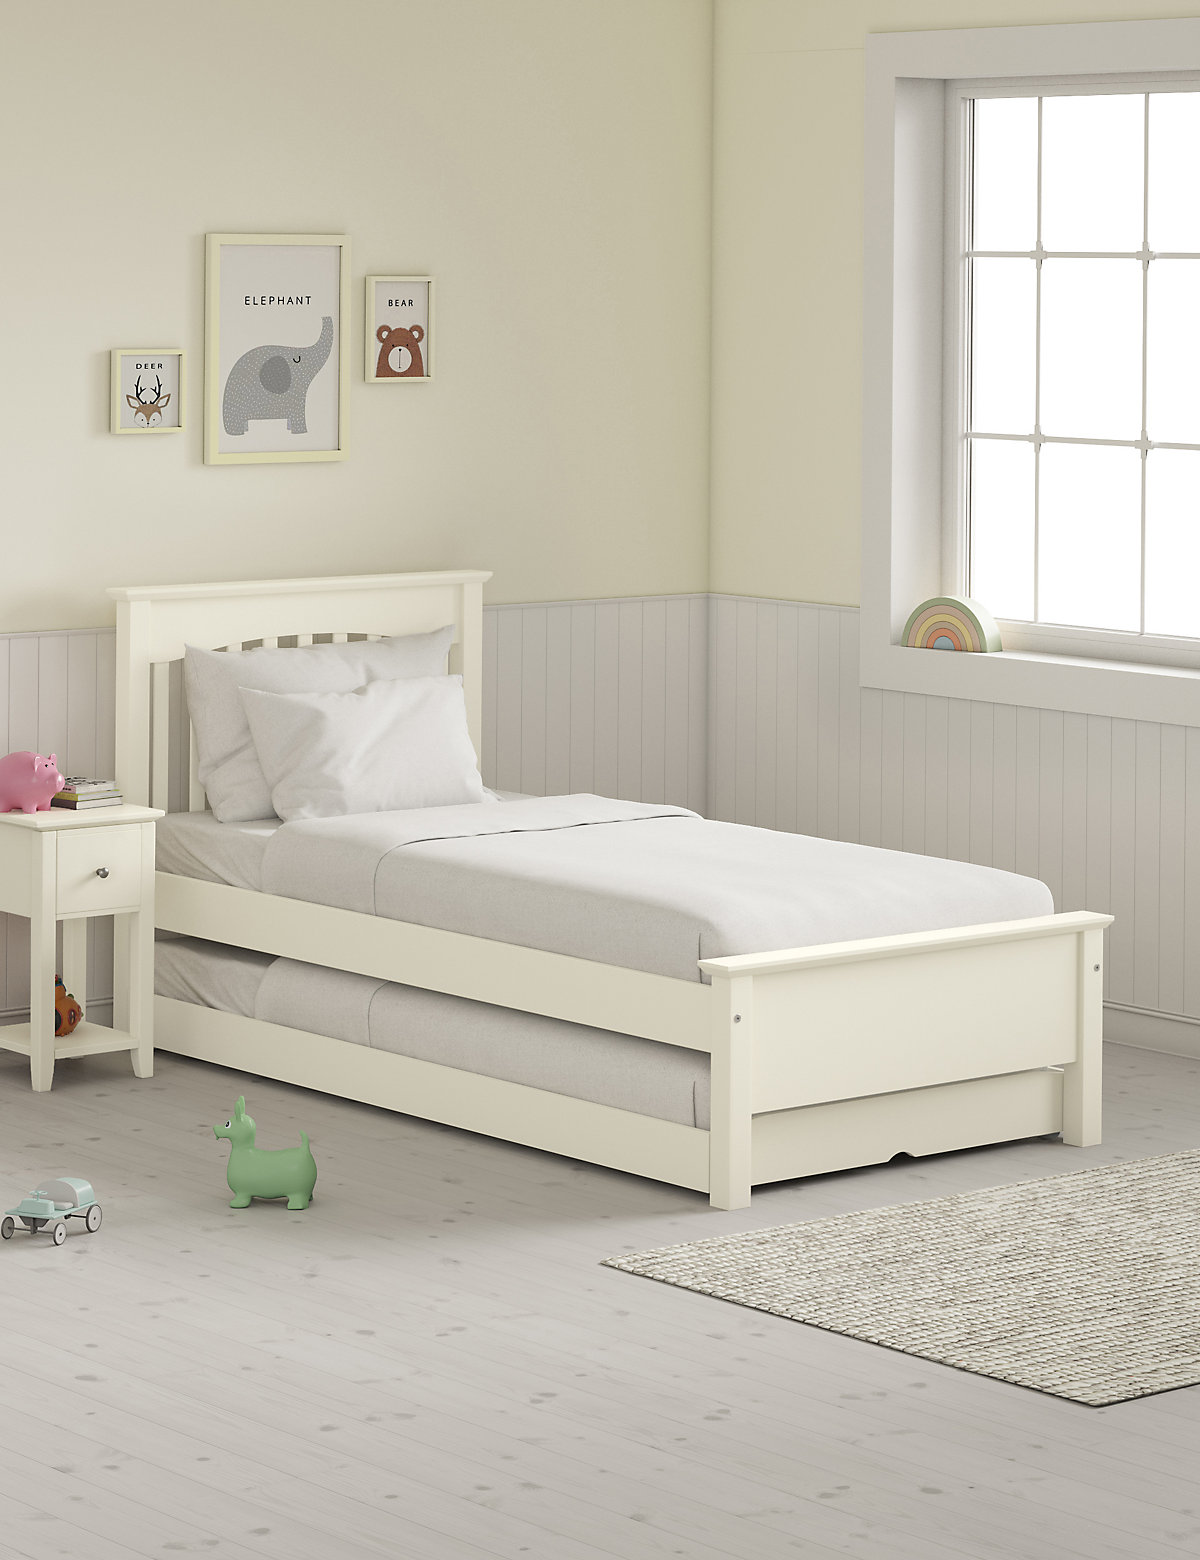 Hastings Ivory Childrens Guest Bed